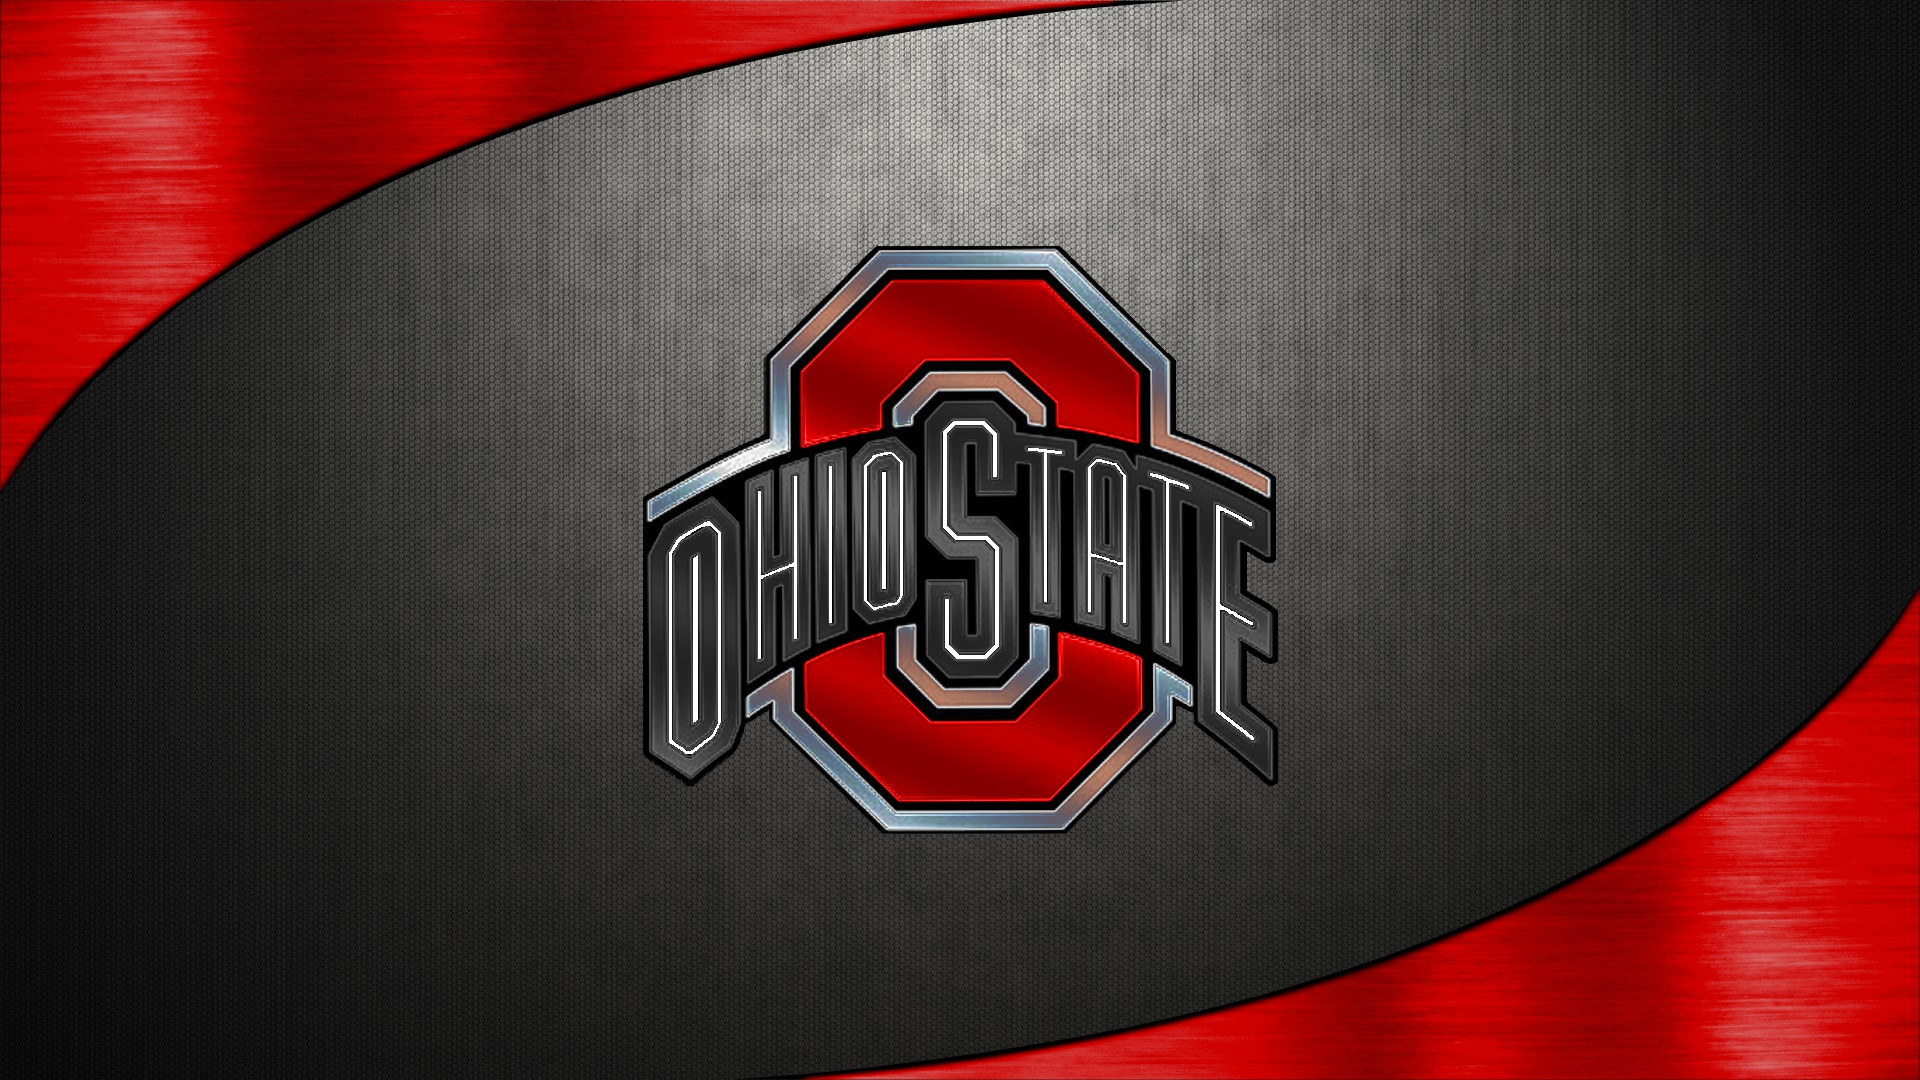 OSU Wallpaper 447   Ohio State Football Wallpaper 33541146 1920x1080